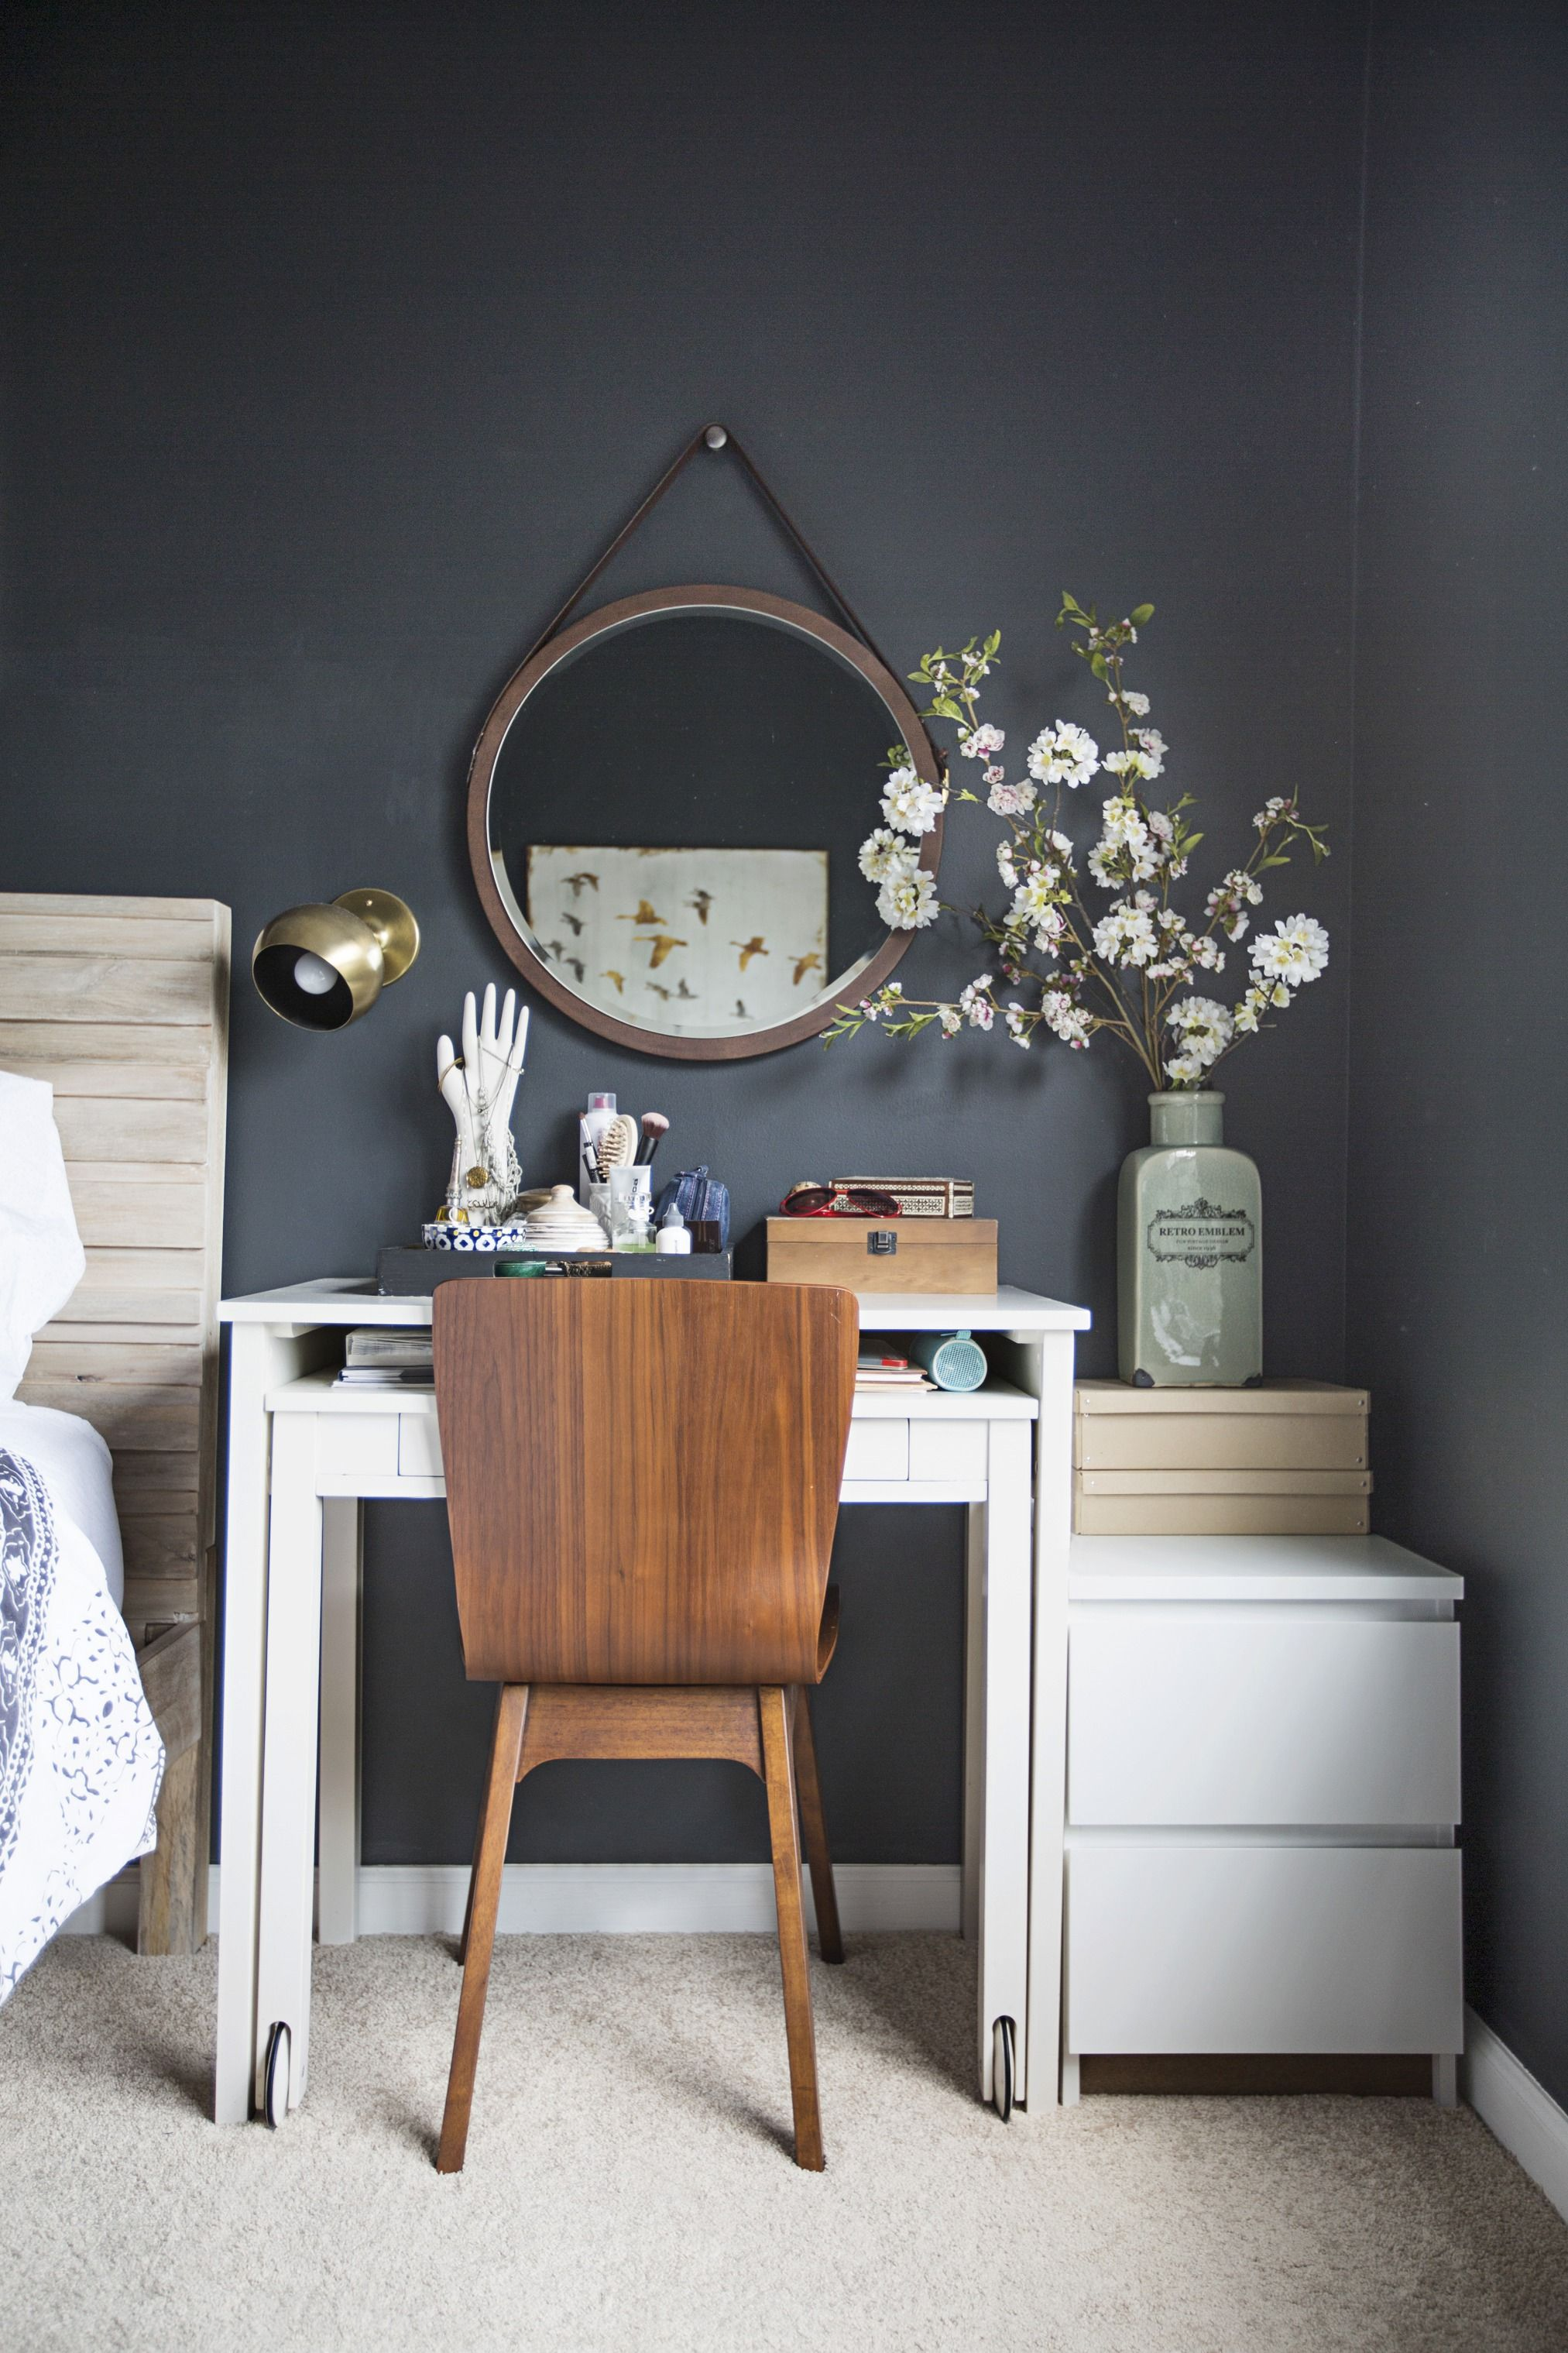 9 Ways to Make All Your Clutter Look Without